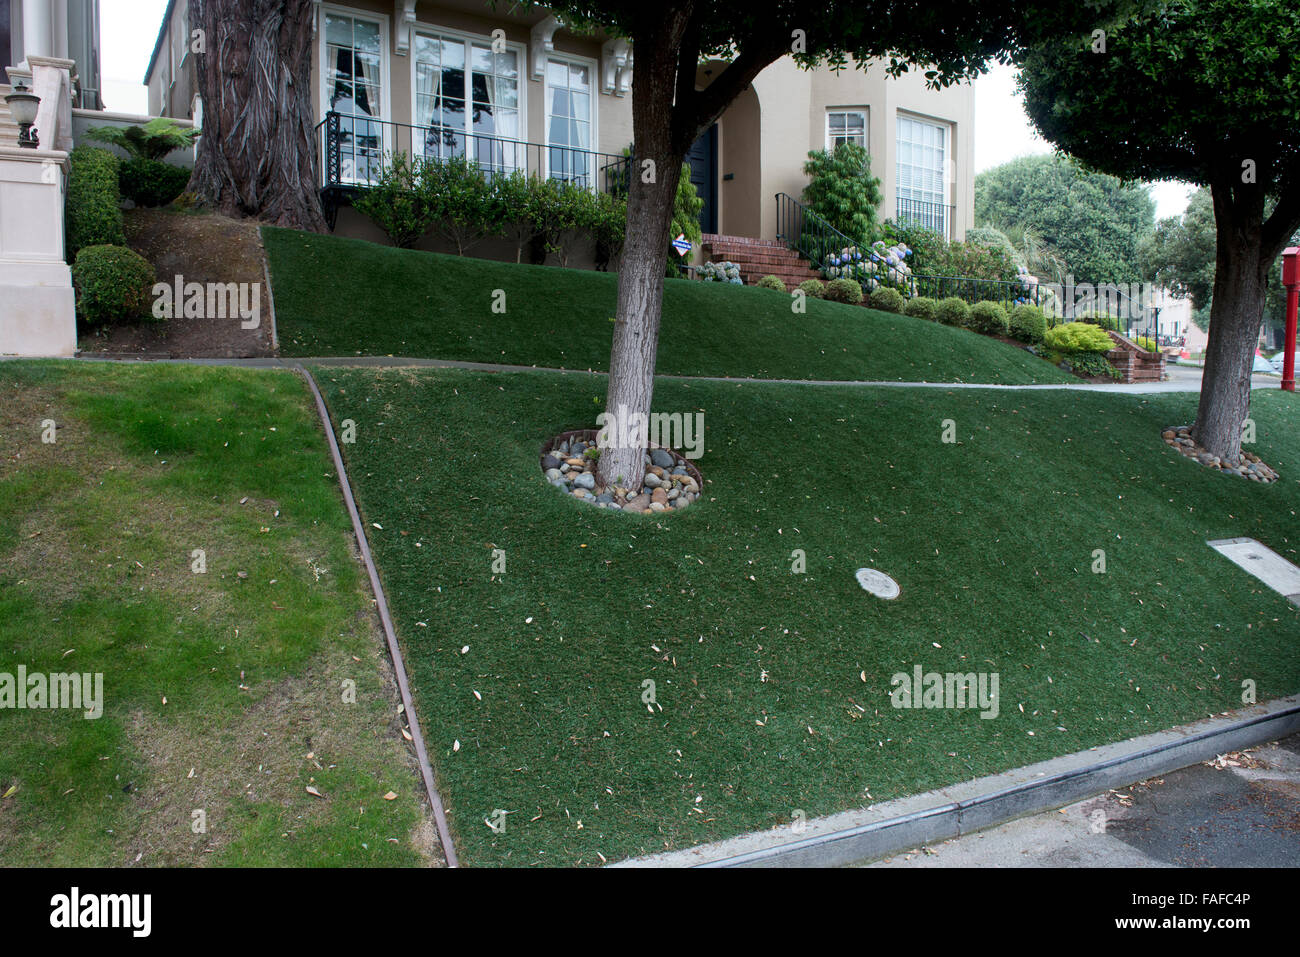 Californian water shortage,drought means some have changed lawns to astroturf - Stock Image